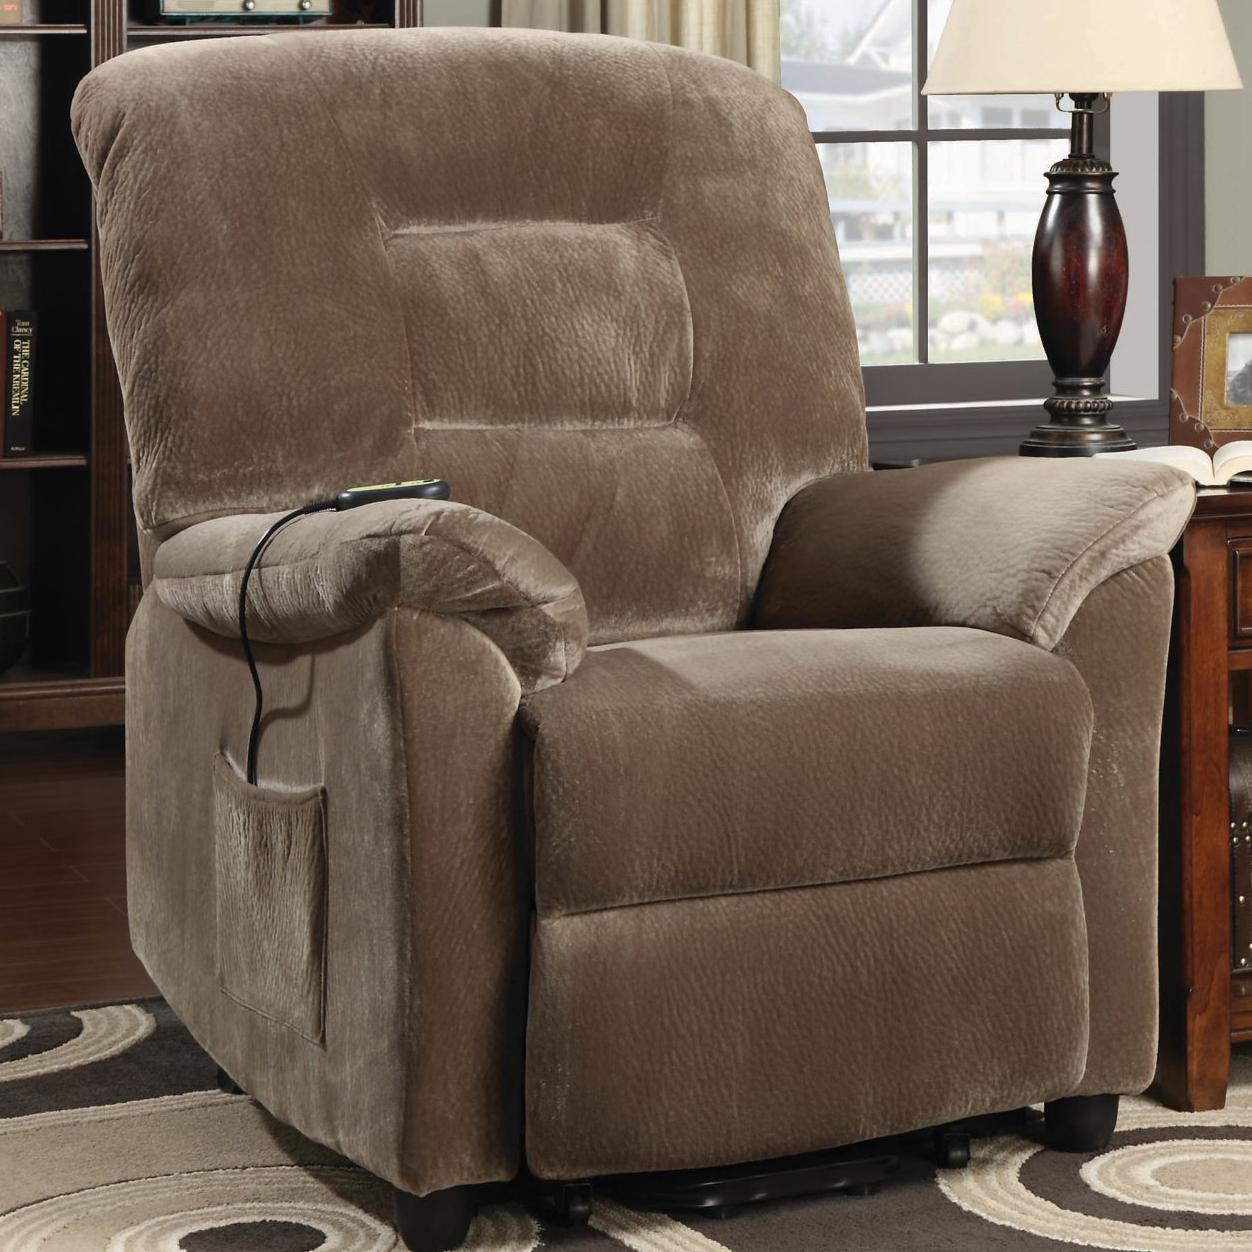 Coaster Recliners Casual Power Lift Recliner With Brown